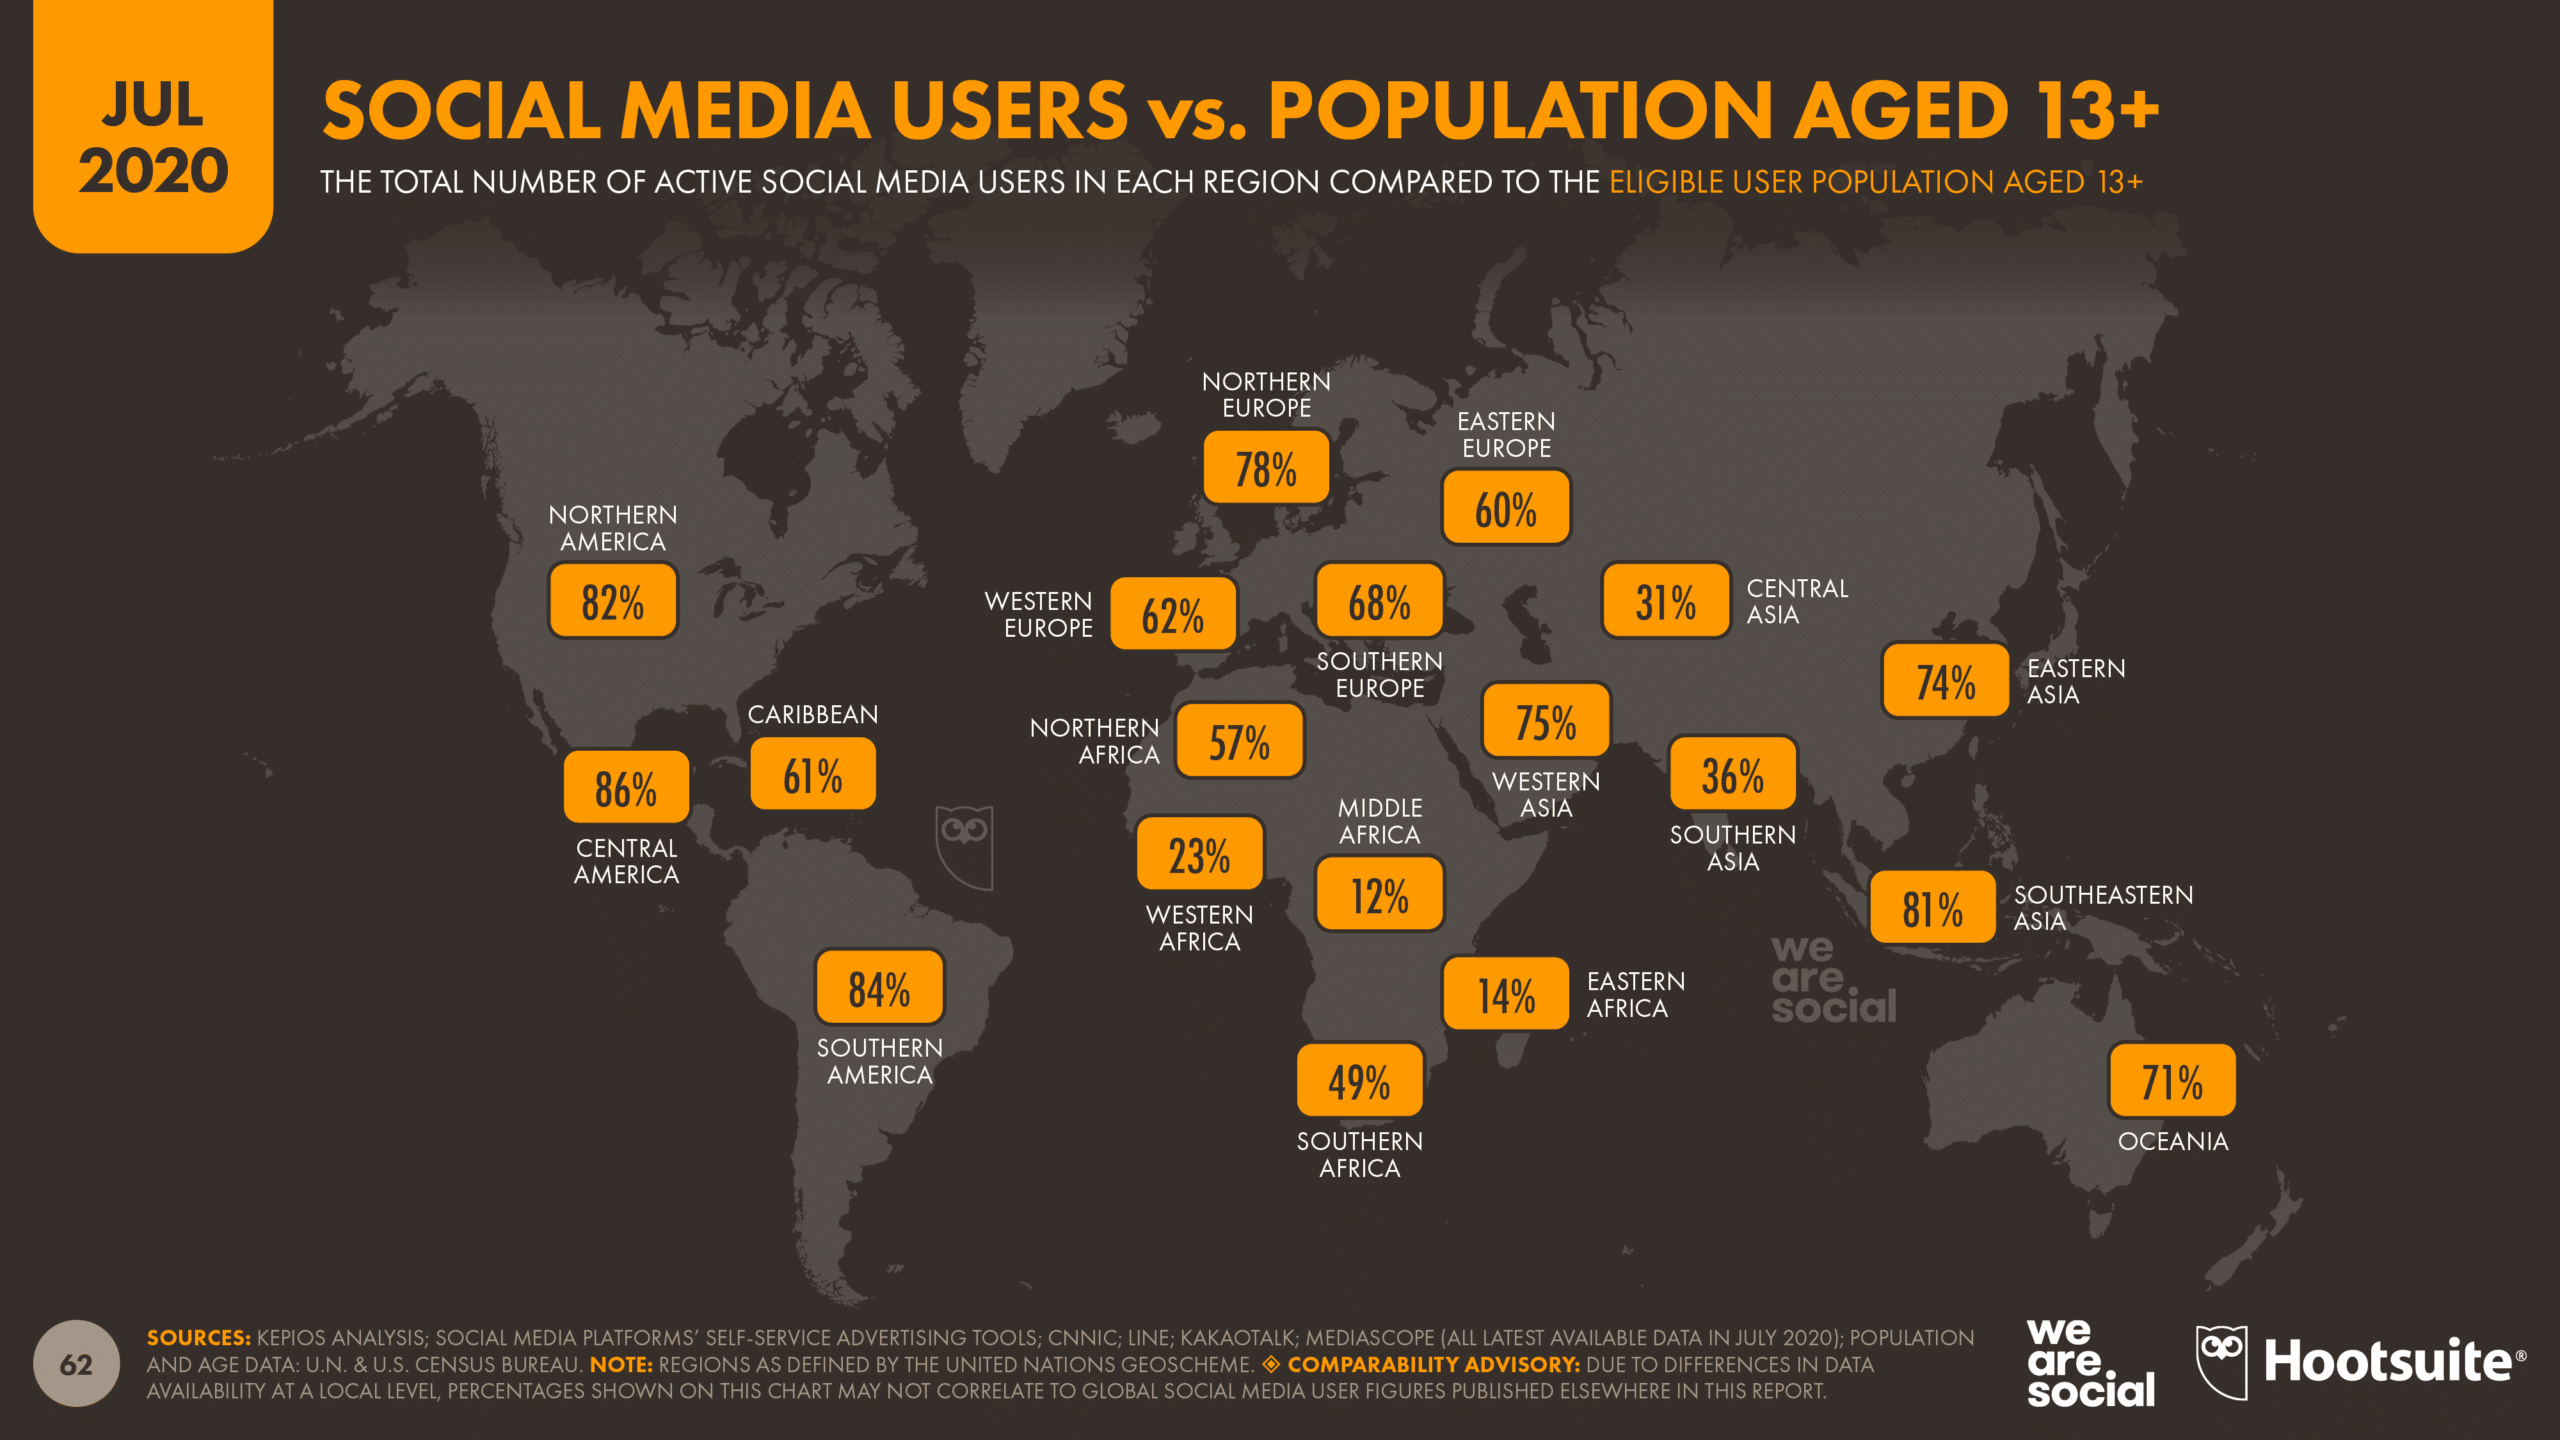 Social media users versus pop ages 13 and up